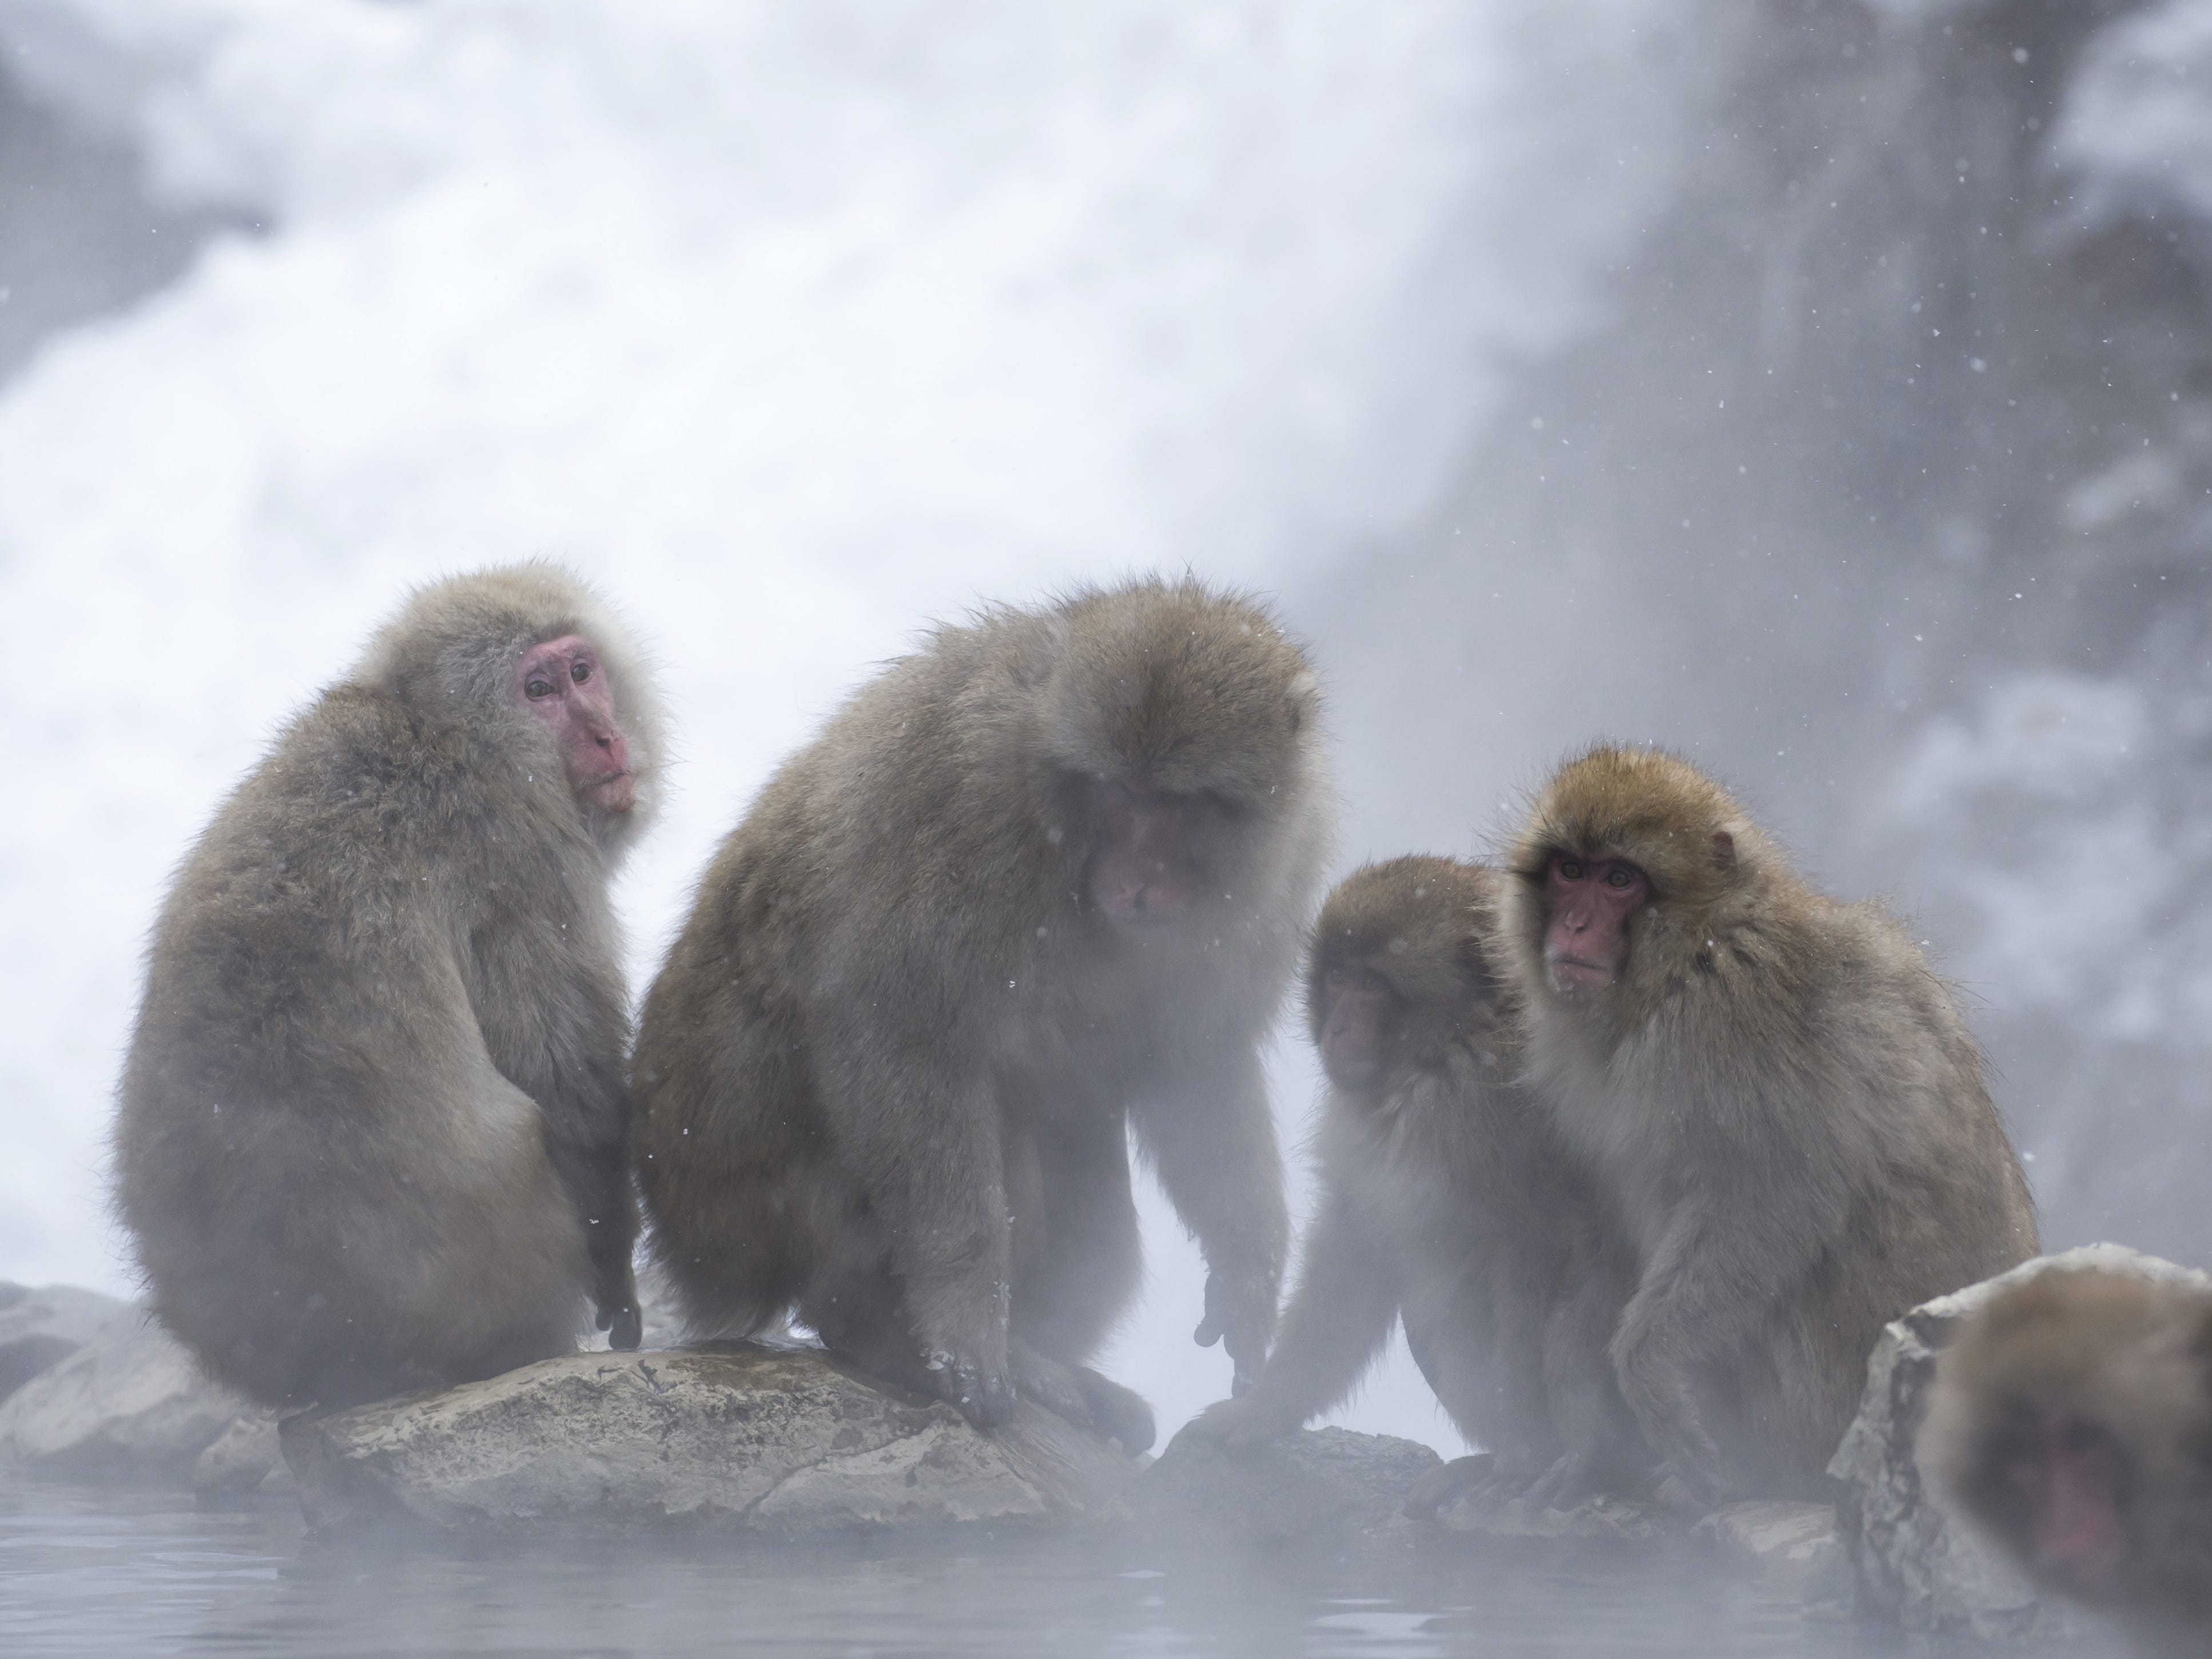 YAMANOUCHI, JAPAN - FEBRUARY 08: Macaque monkeys stand near a hot spring at the Jigokudani Yaen-koen wild Macaque monkey park on February 8, 2019 in Yamanouchi, Japan. The wild Japanese macaques are known as snow monkeys, according to the park's official website. (Photo by Tomohiro Ohsumi/Getty Images) ORG XMIT: 775292339 ORIG FILE ID: 1128215787